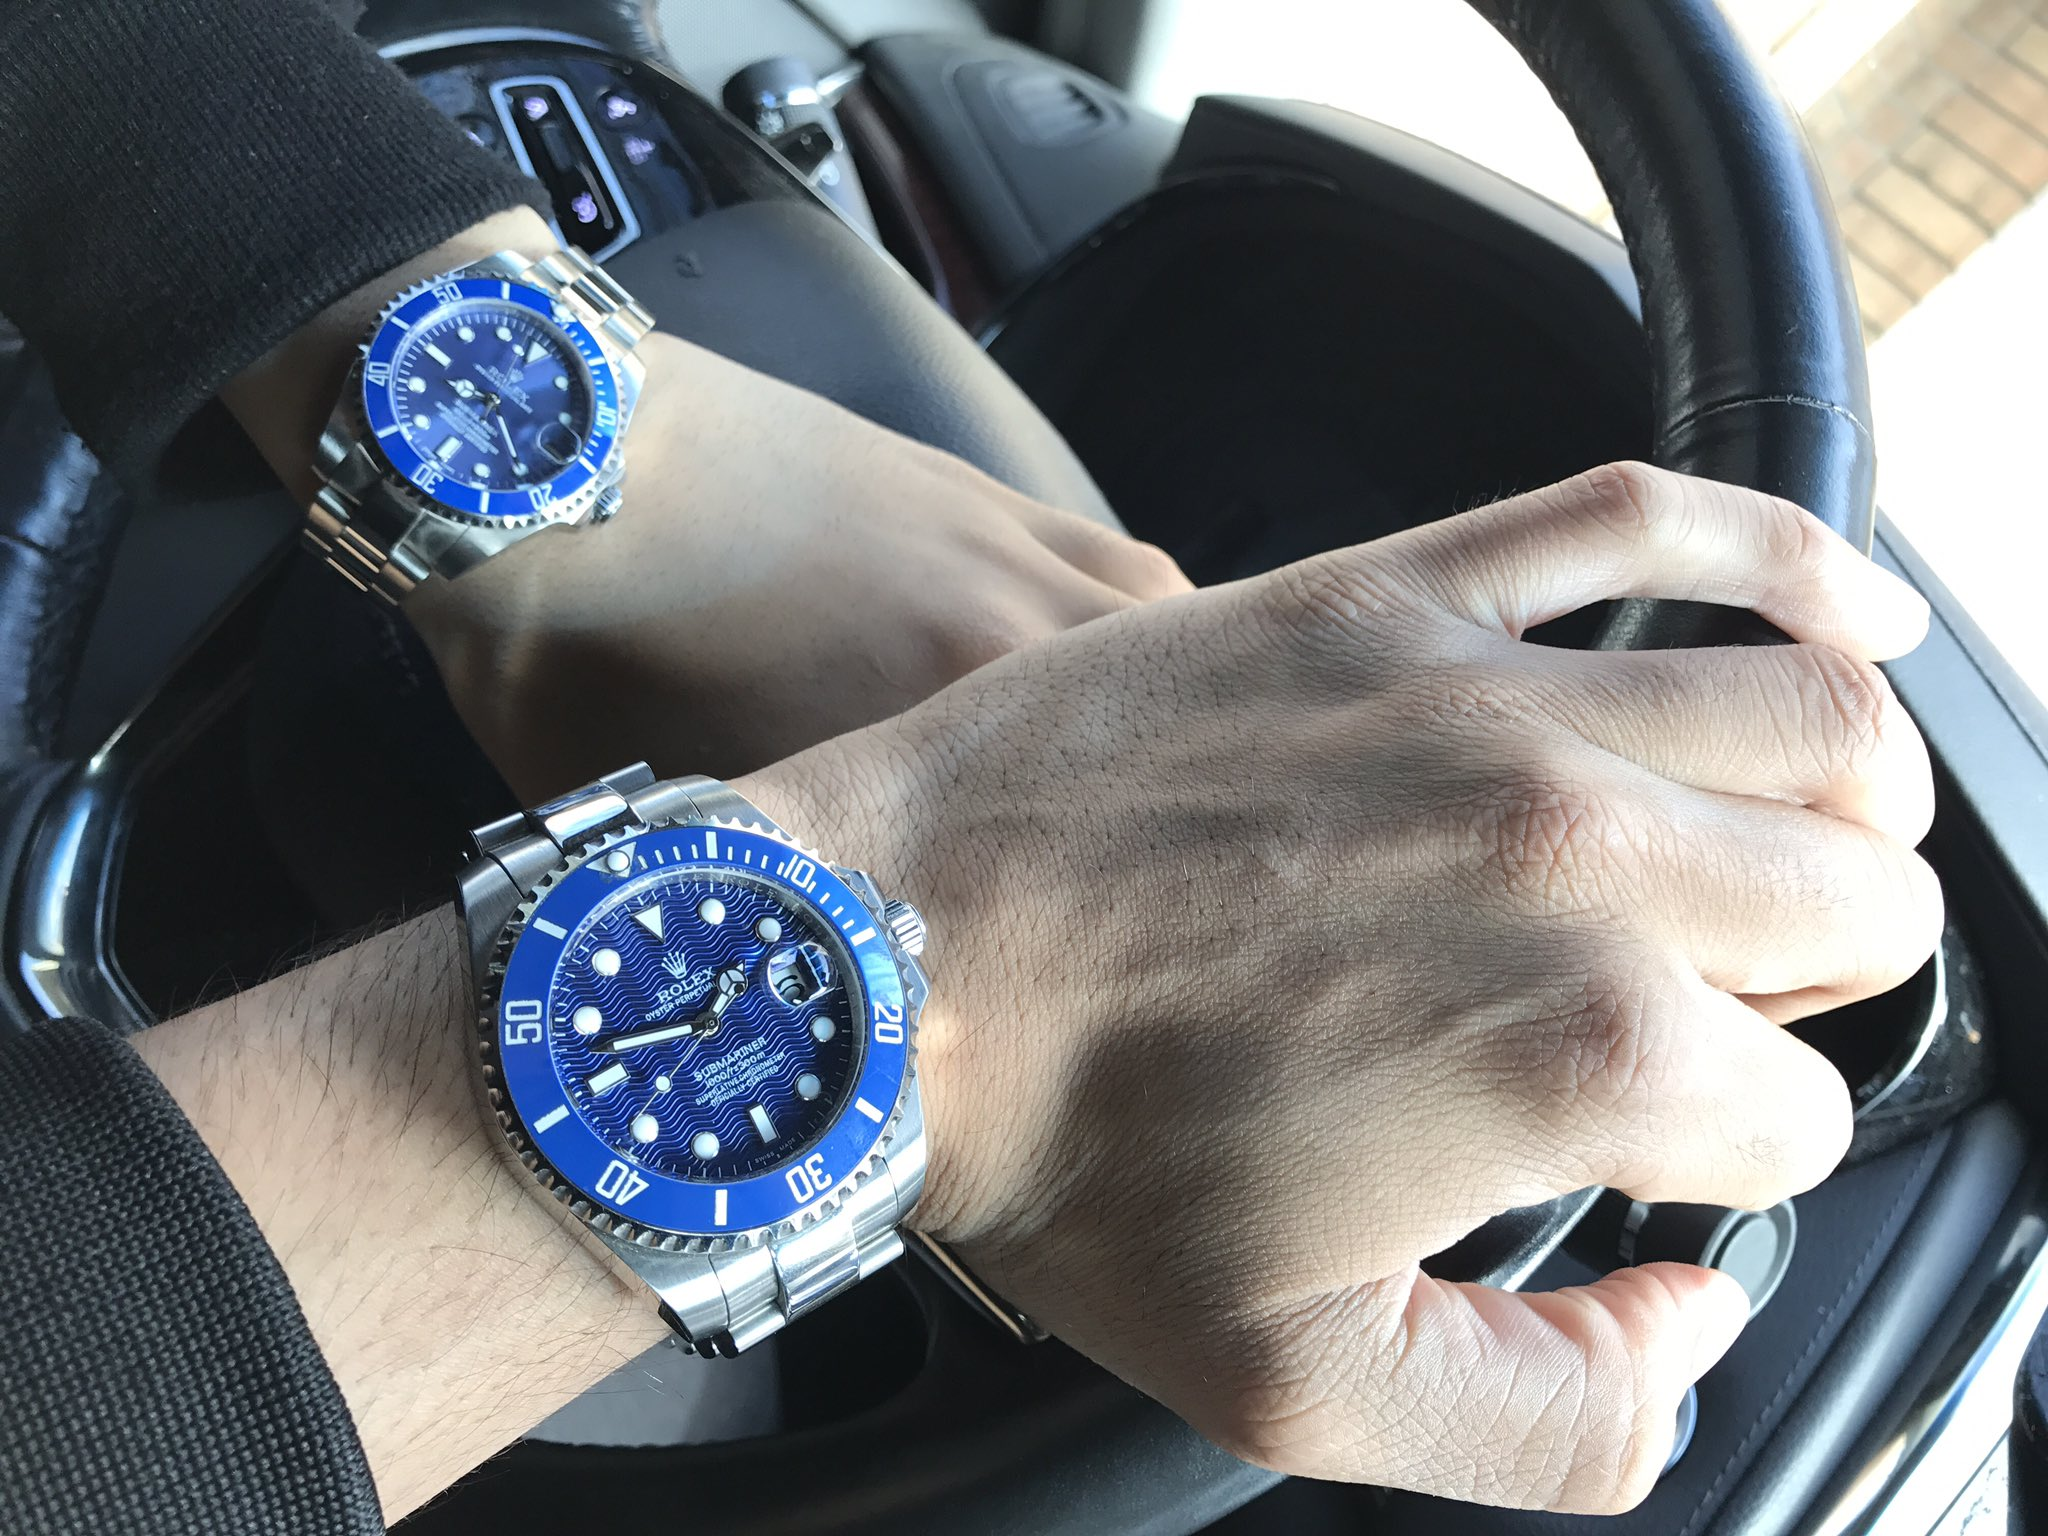 Sham Idrees On Twitter Everyone Needs A Best Friend Like Her This Was Too Much Matchingrolexwatches